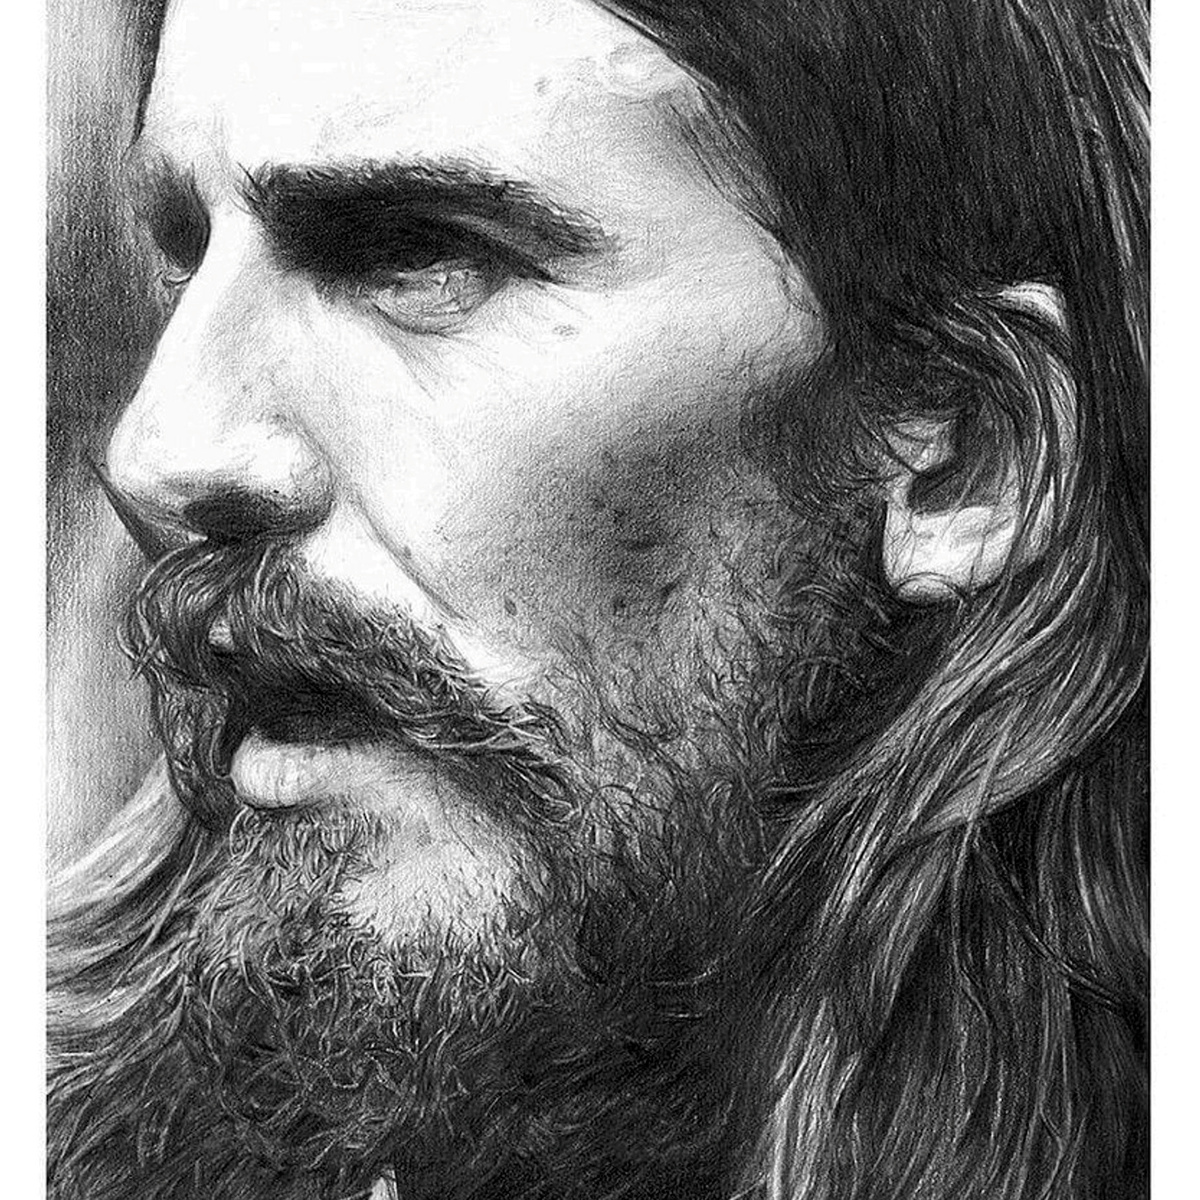 SWNS BEATLES DRAWINGS 02 Former Model Now Creates Incredible Photo Real Portraits Using Pencil